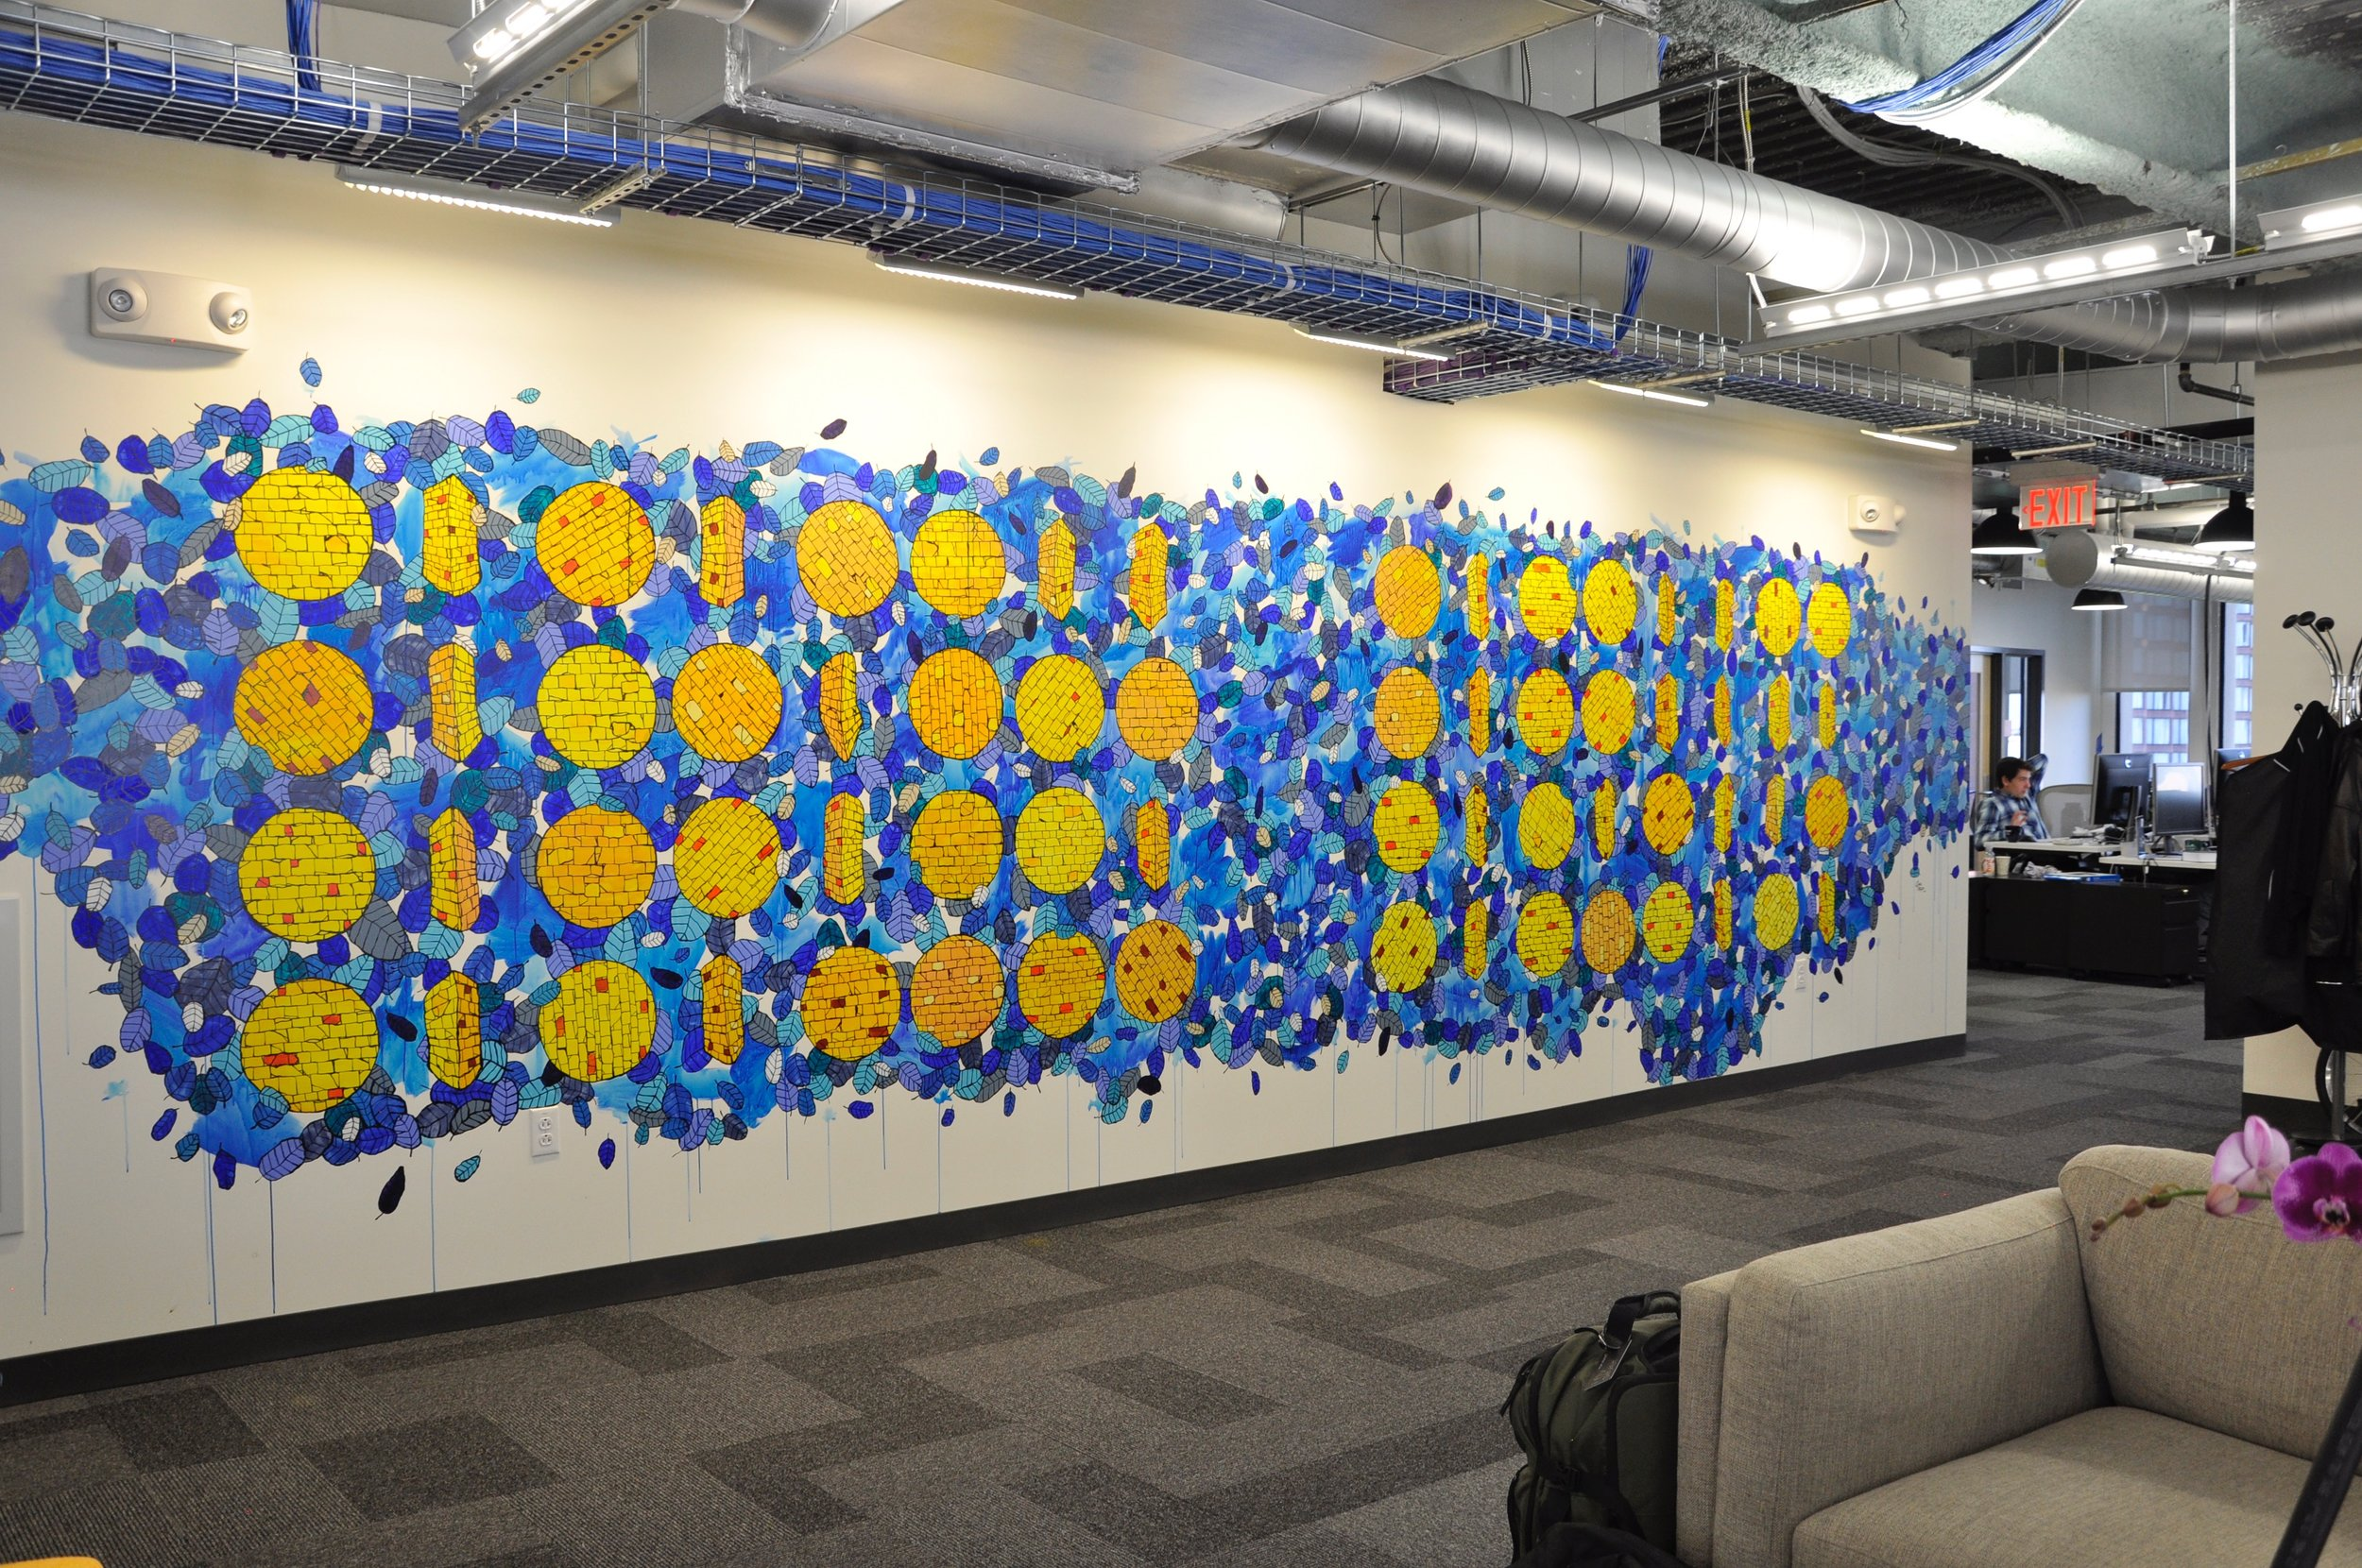 SHIP LOVE (binary code) at Facebook's Cambridge MA office, 2016